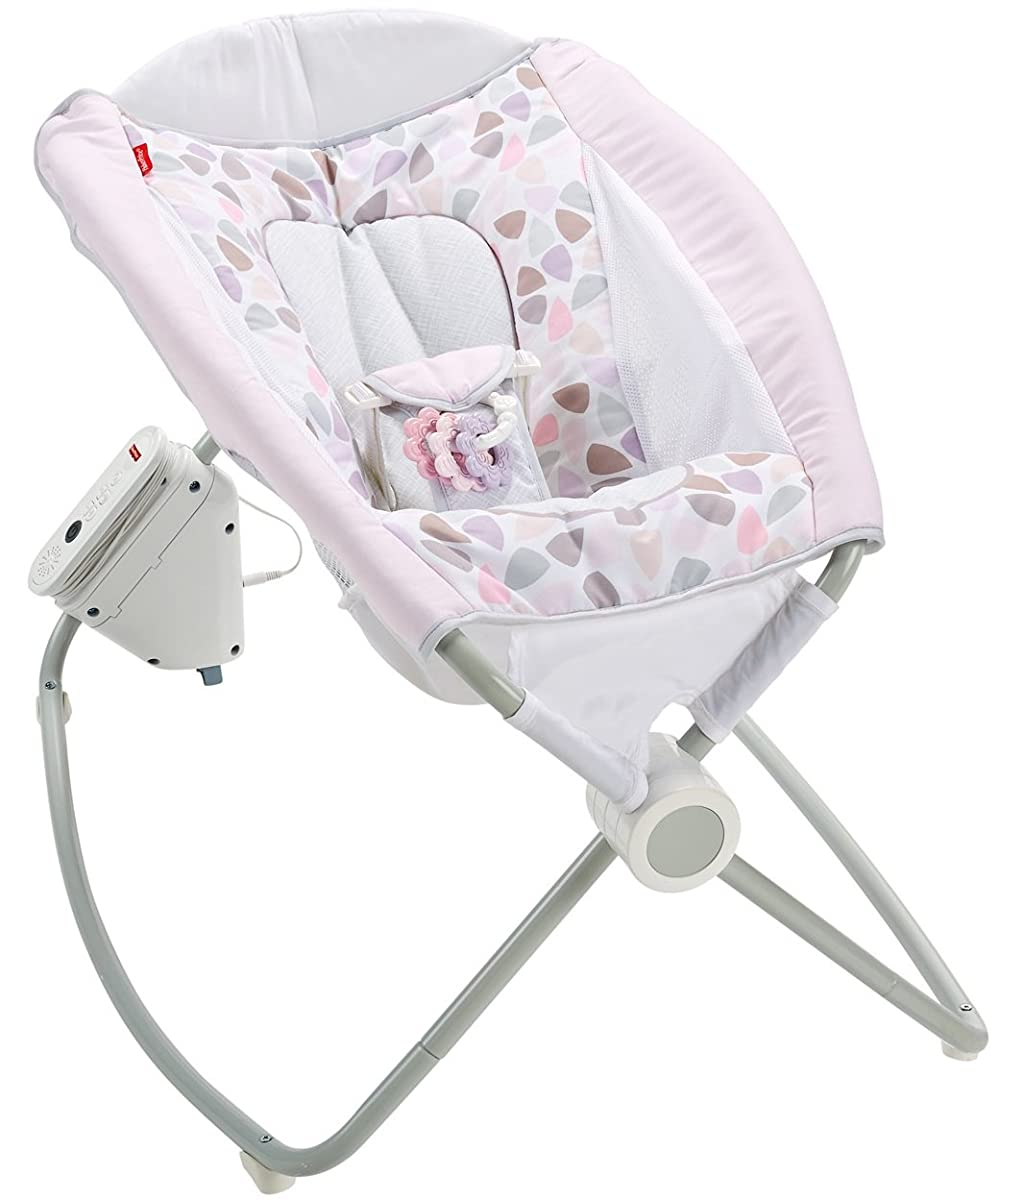 Fisher-Price Auto Rock n Play Sleeper - Glossy Gem